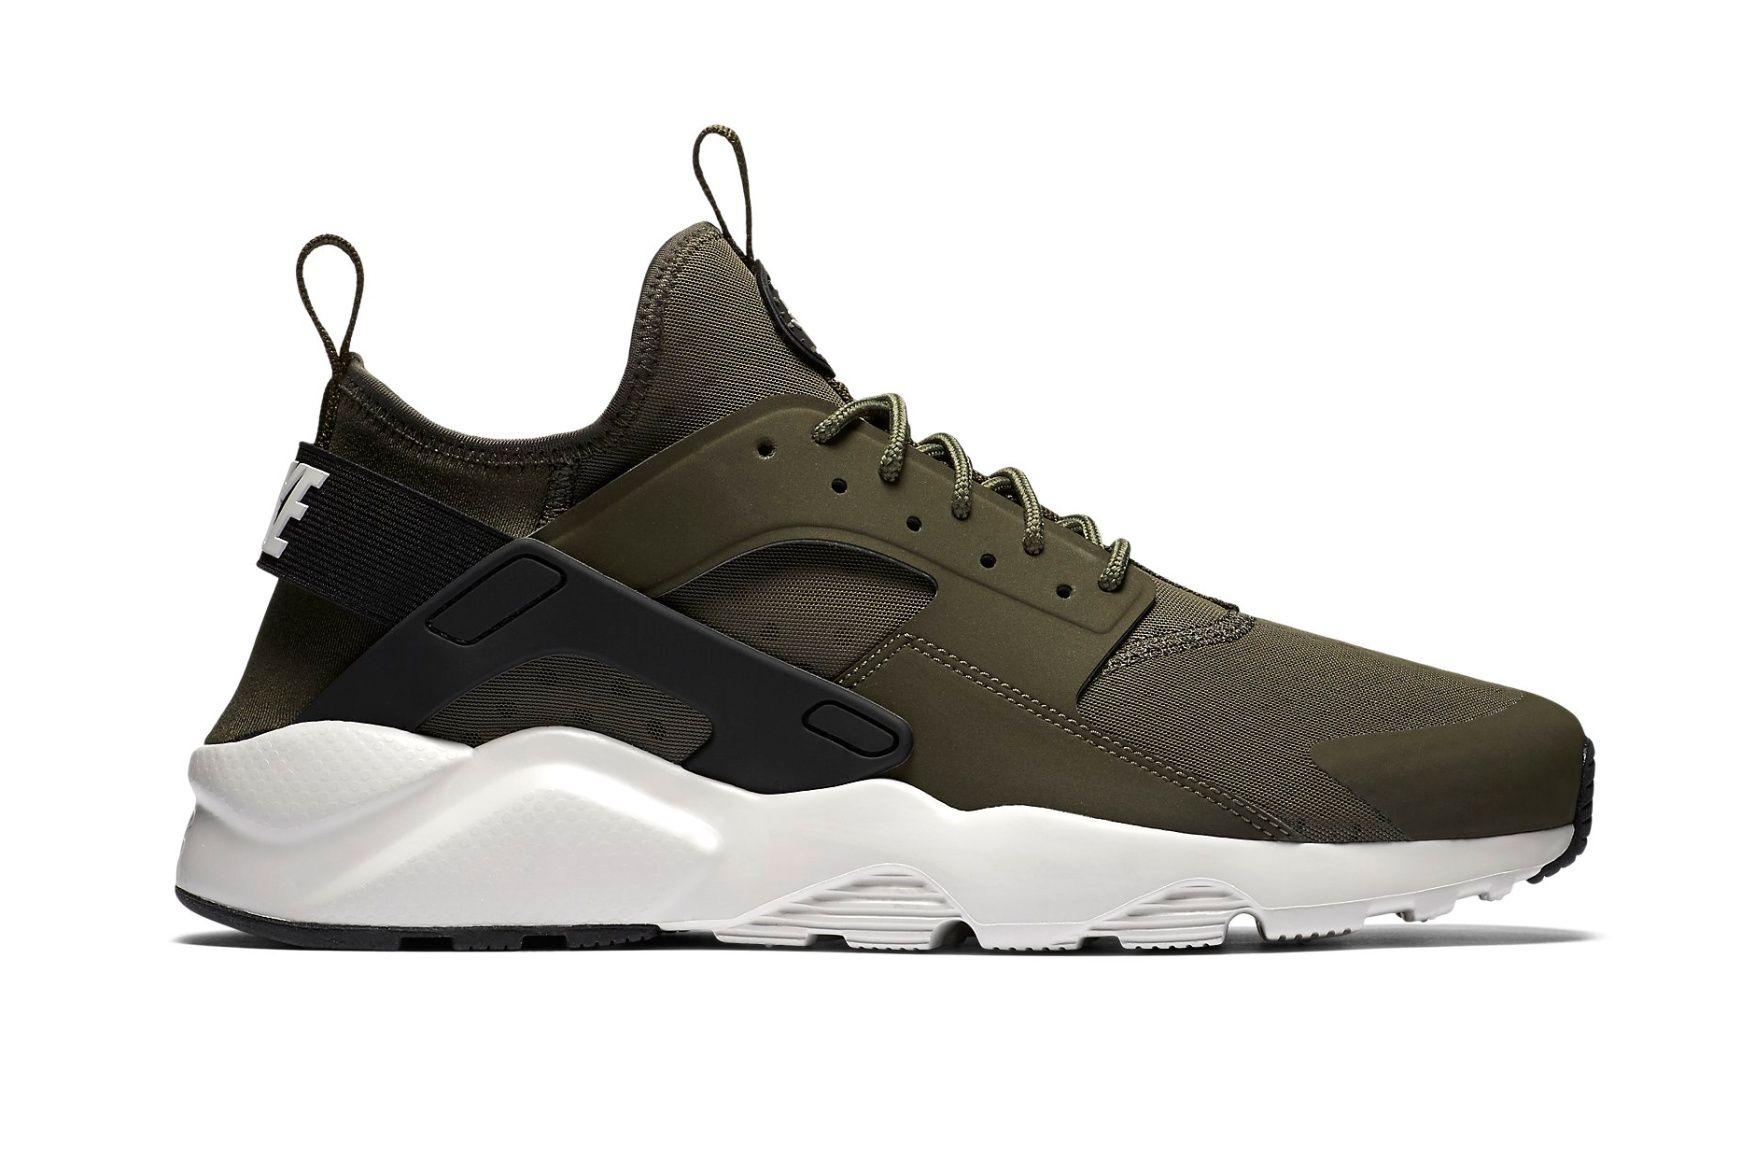 low priced 3a7a5 2bced Nike, Air Huarache Ultra, cargo khaki, cargo green